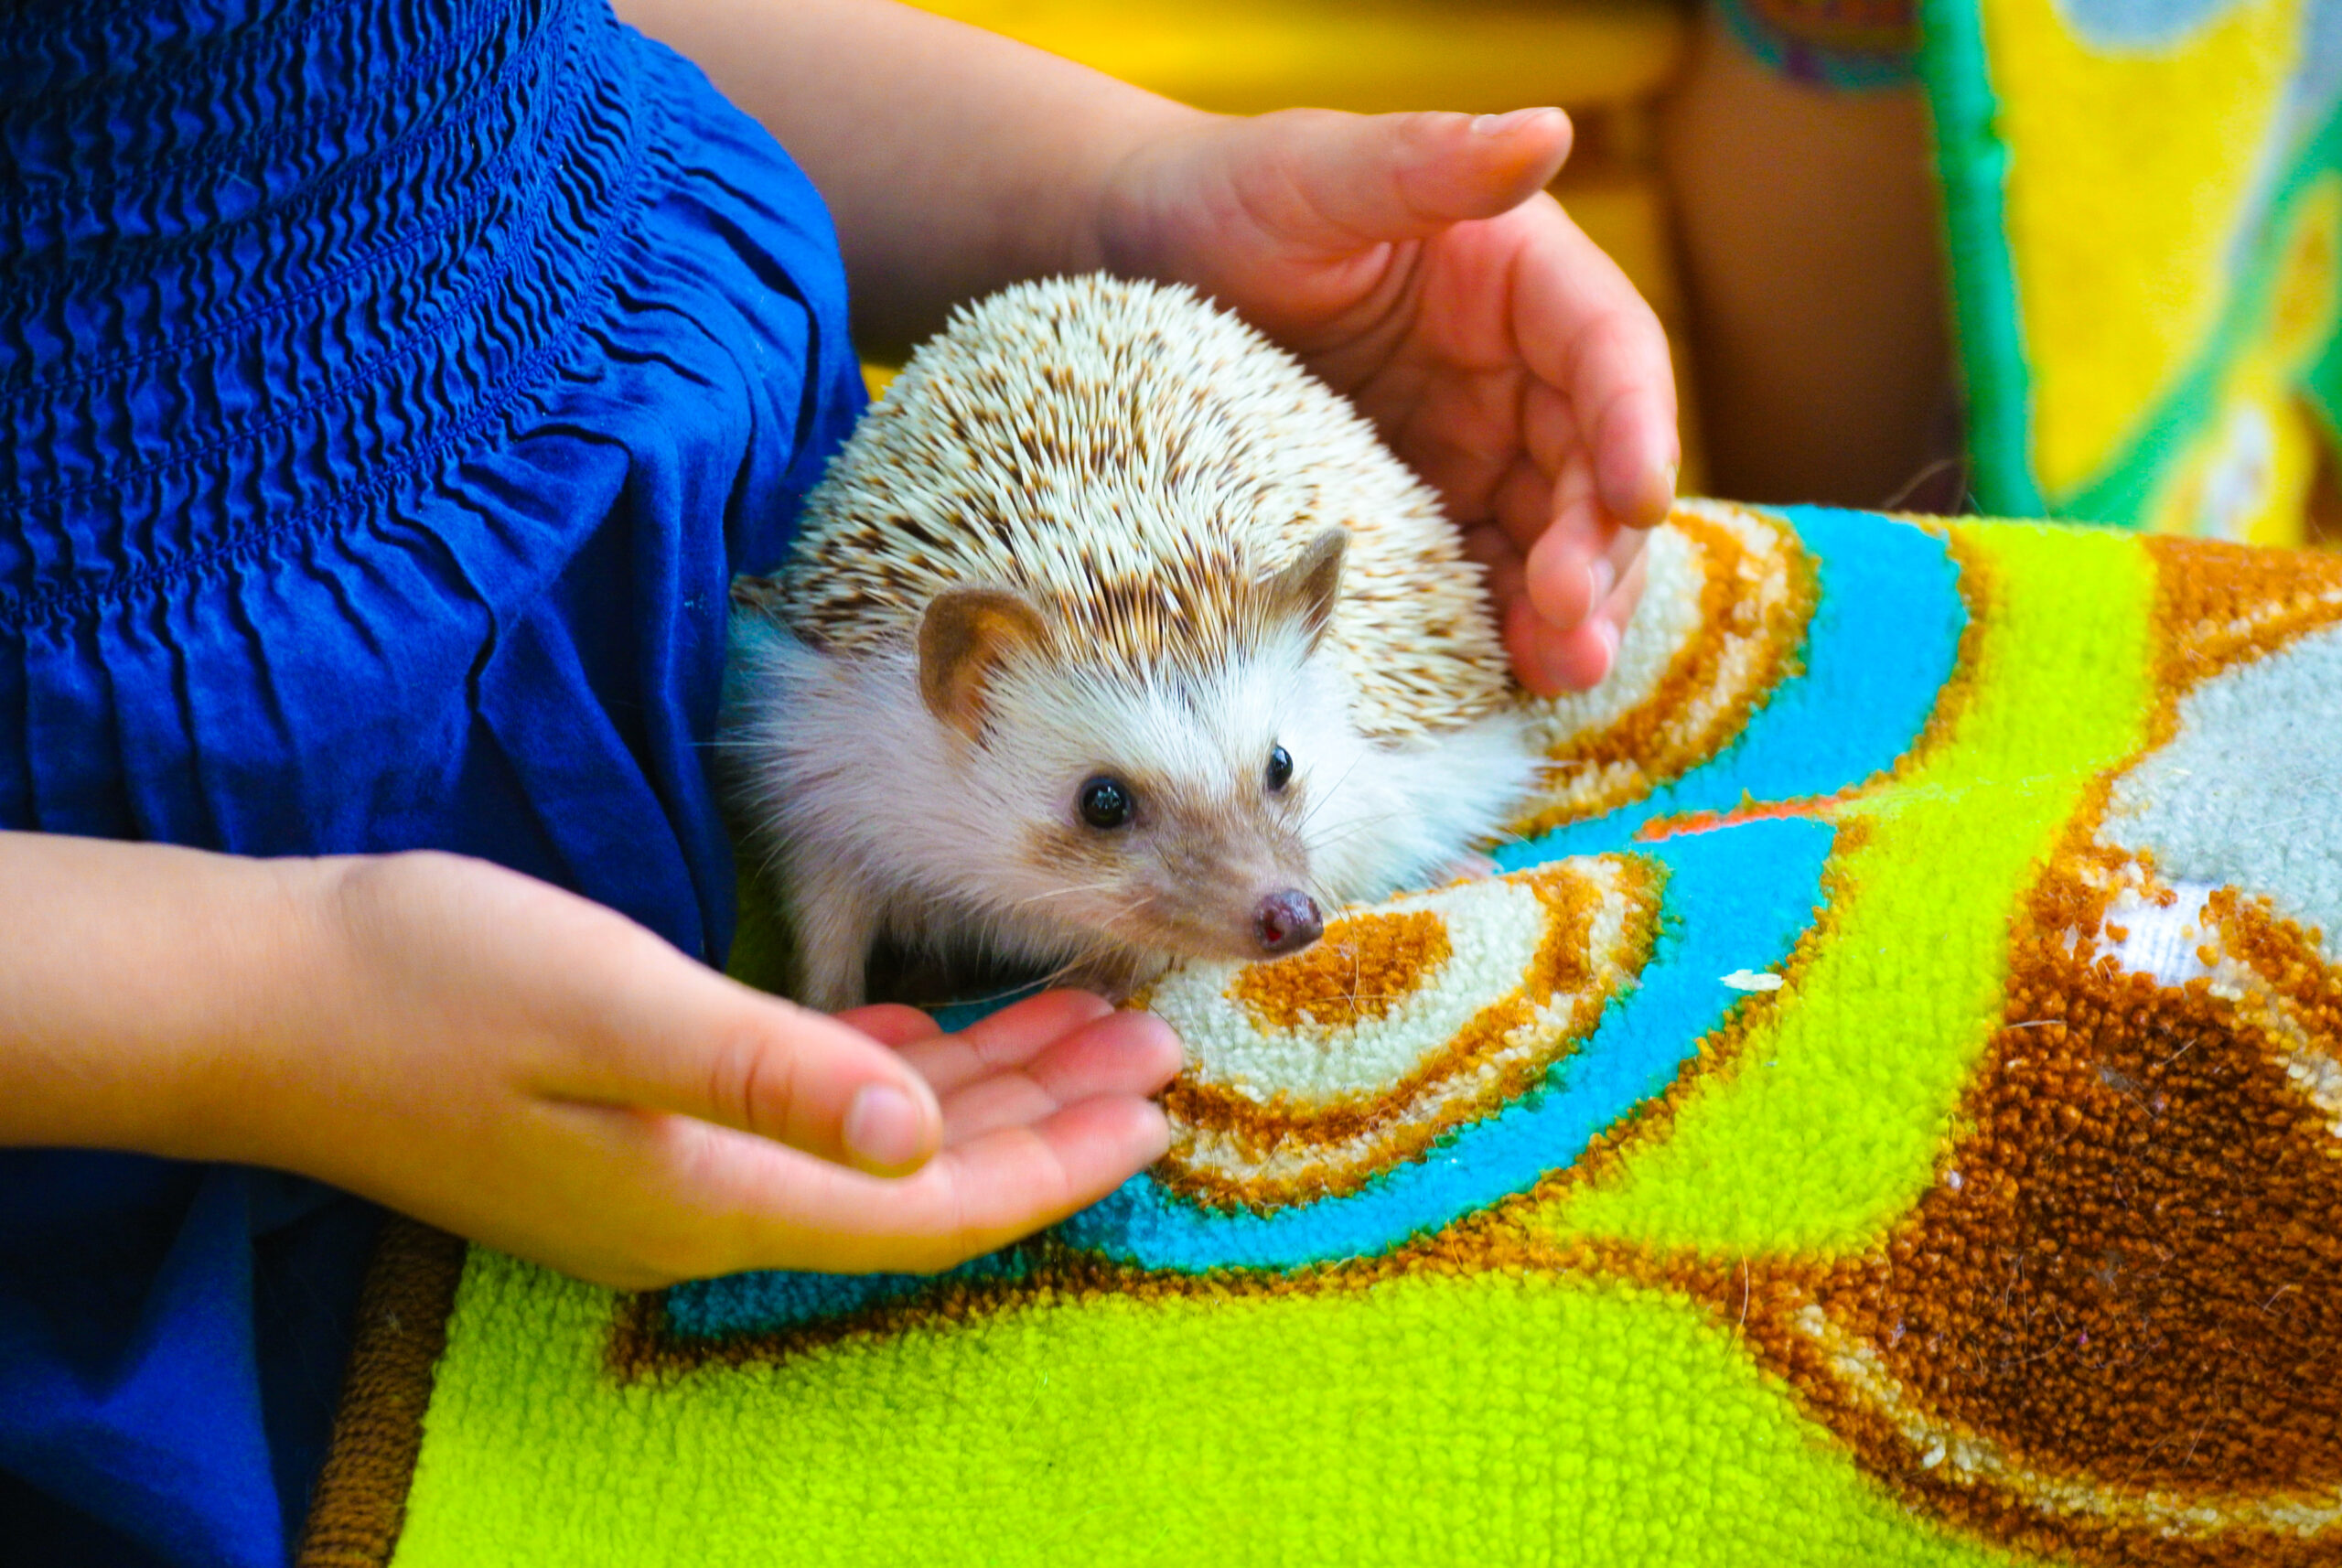 Baby Hedgehog at Tiny Tails to You Traveling Petting Zoo